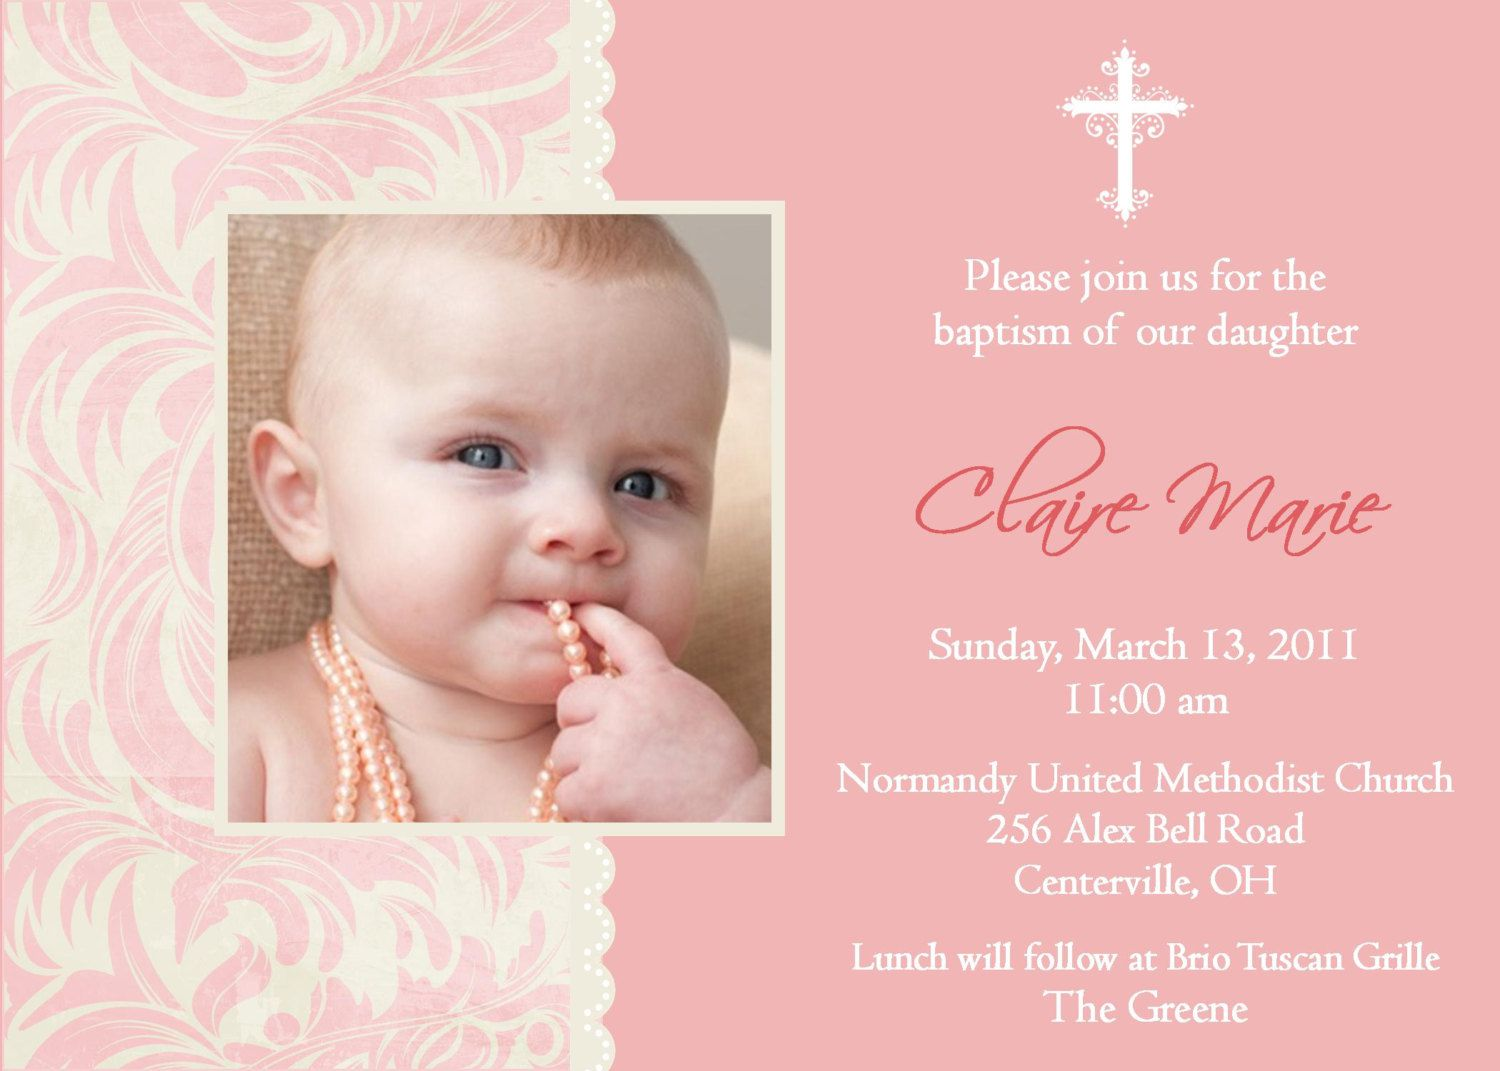 1st birthday invitation quotes for daughter ; baptism-and-first-birthday-invitation-wording-For-design-sensationell-luxury-Baptism-Invitations-and-glamoure-10